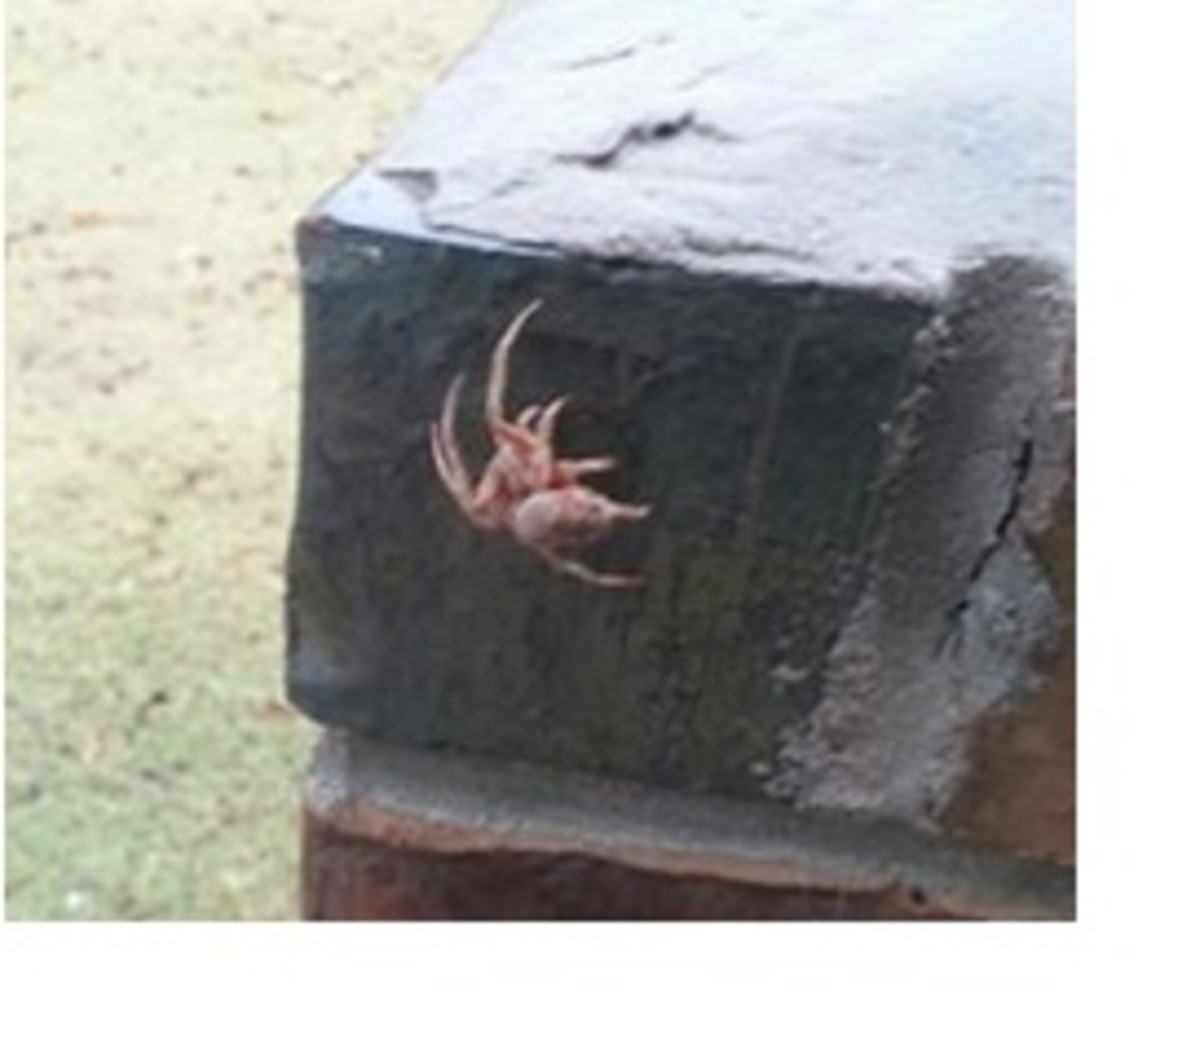 Kay in Oklahoma saw this miscellaneous mailbox marauder crawling on a mailbox.  She said it creeped her out.  Really?